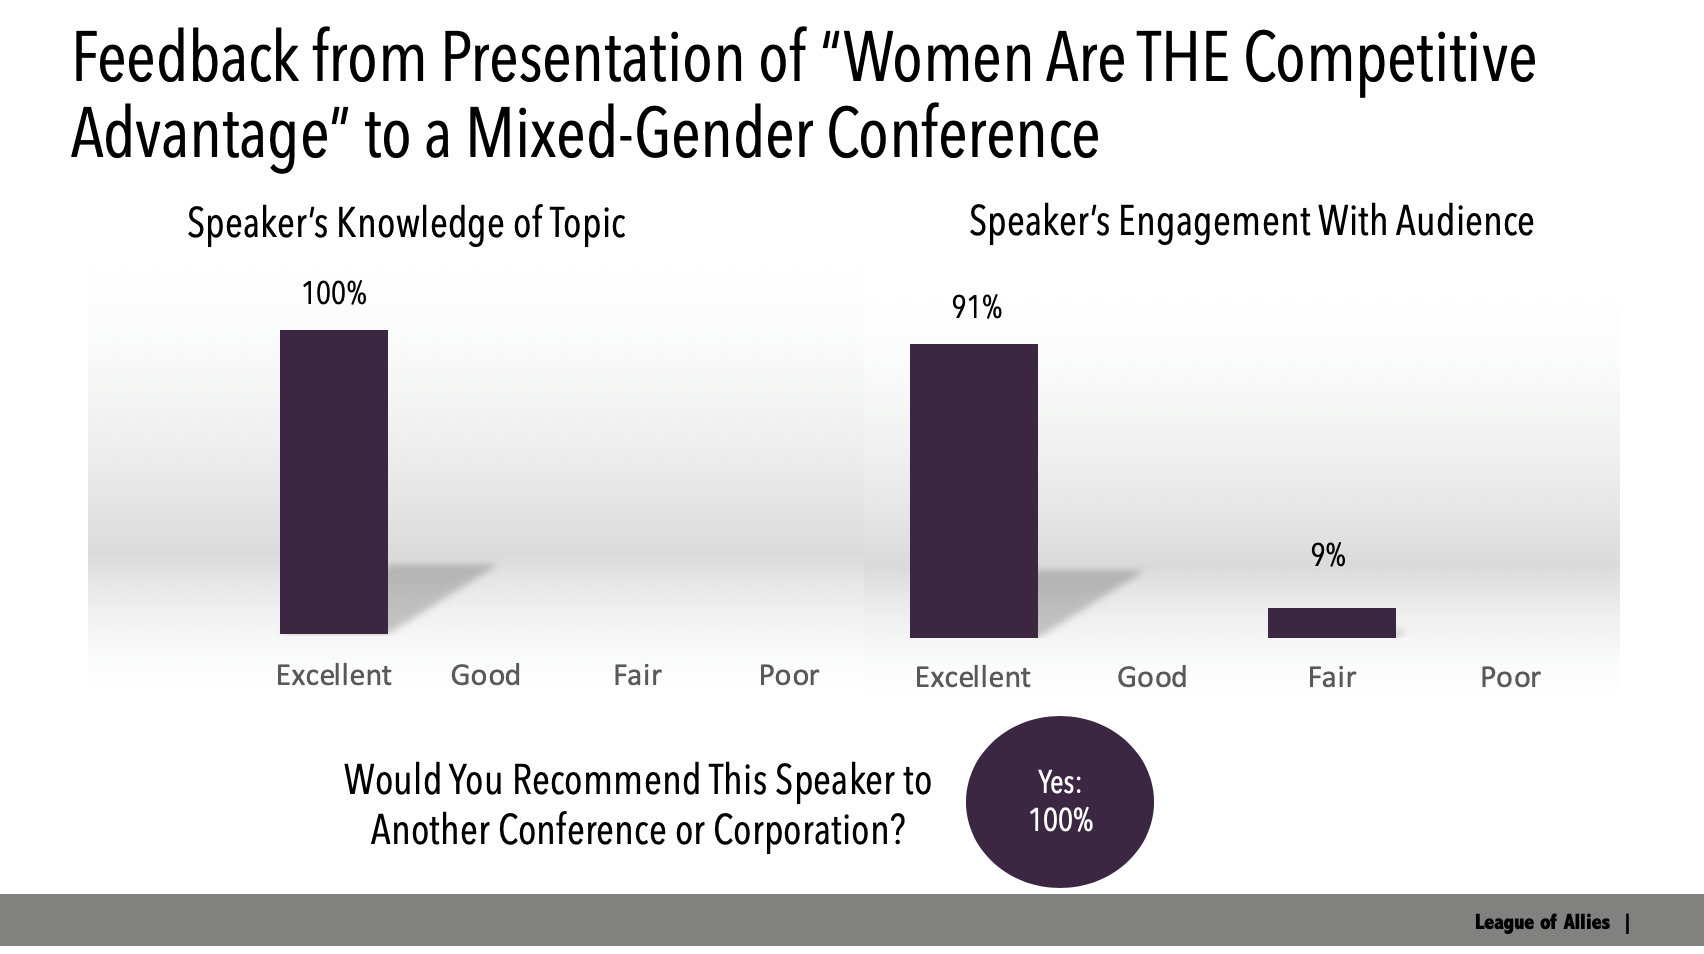 "Image of bar chart results from recent presentation of ""Women are the Competitive Advantage"" that reveals speakers knowledge of topic is 100% Excellent, Speaker's Engagement with Audience is 91% excellent, and 100% of attendees would recommend this speaker to another conference or corporation."